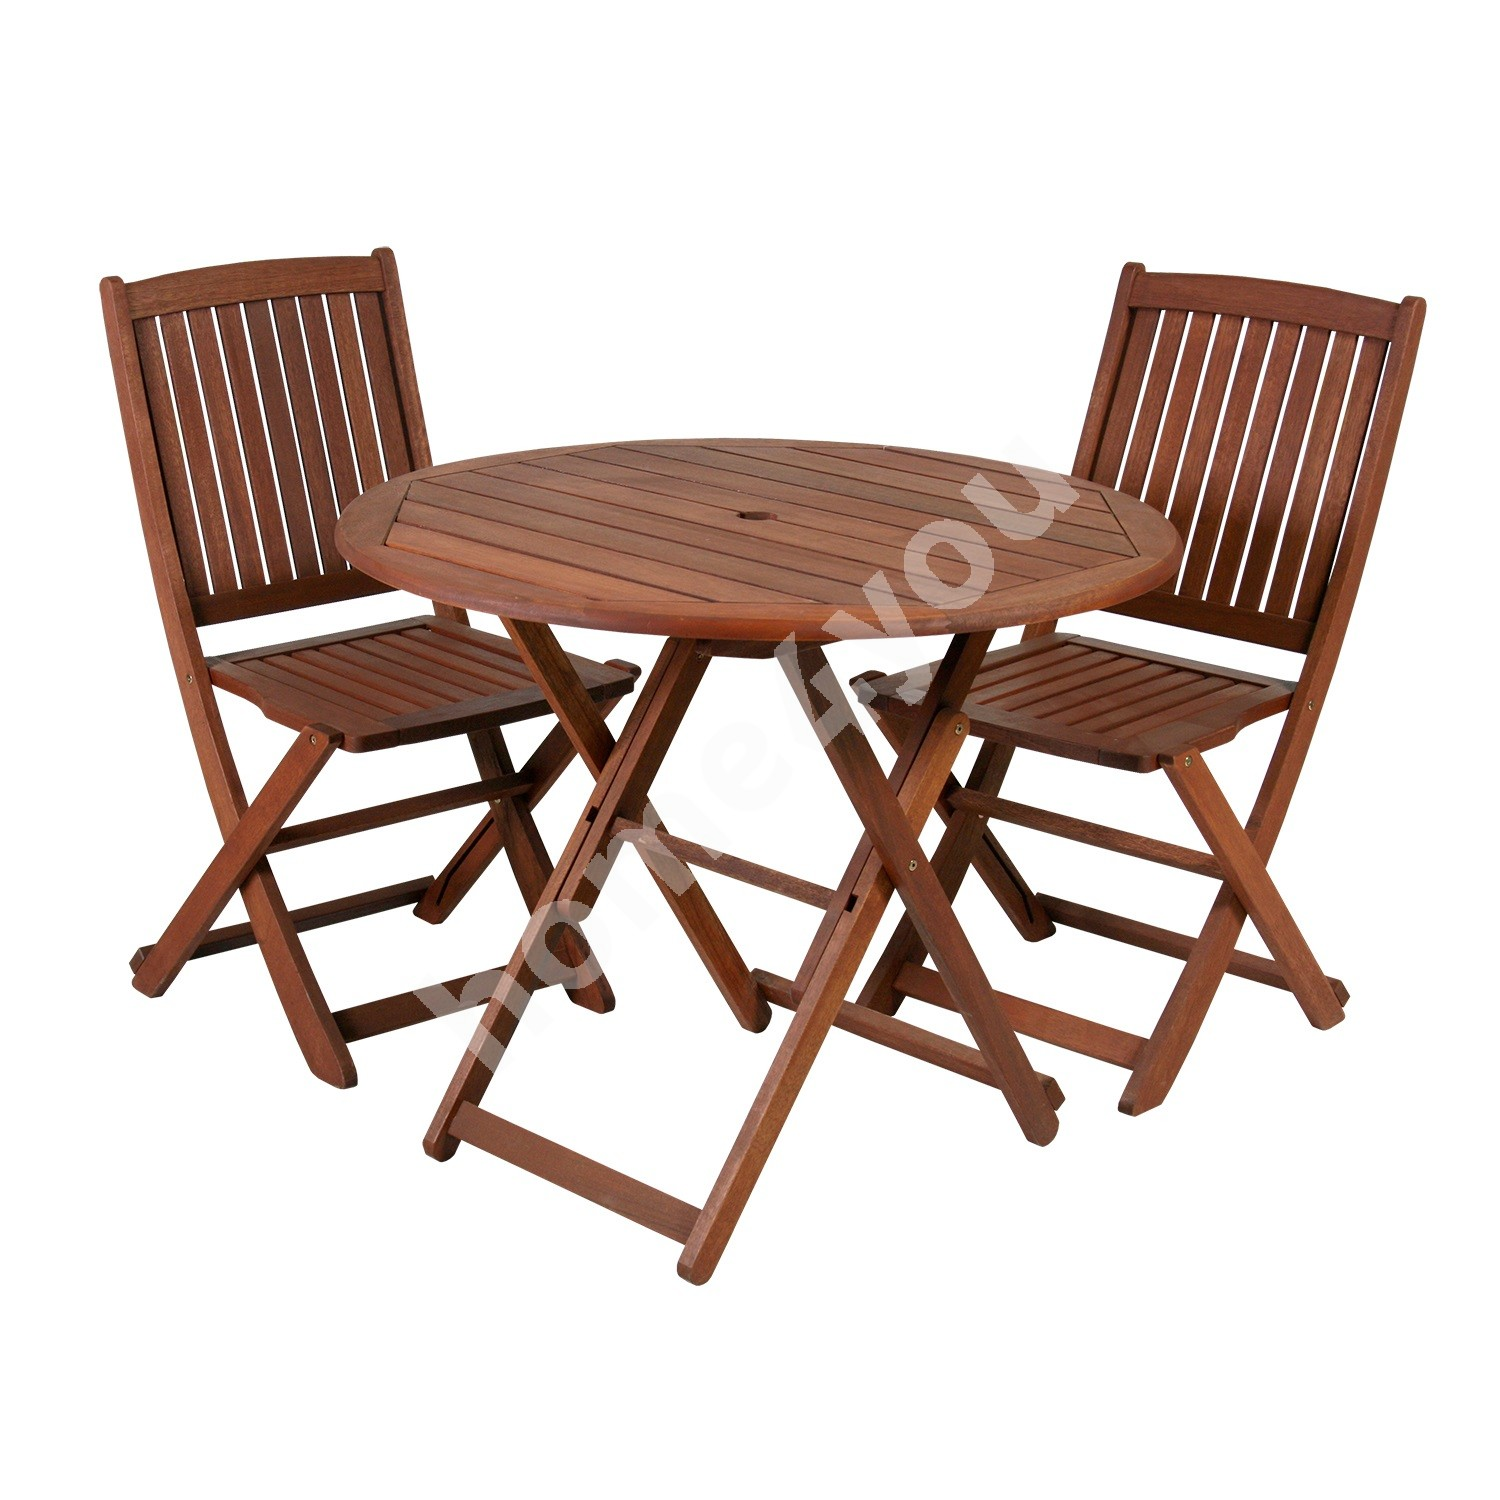 Set NANTES table and 2 chairs (07098), D70xH74cm, foldable, wood: meranti, finishing: oiled